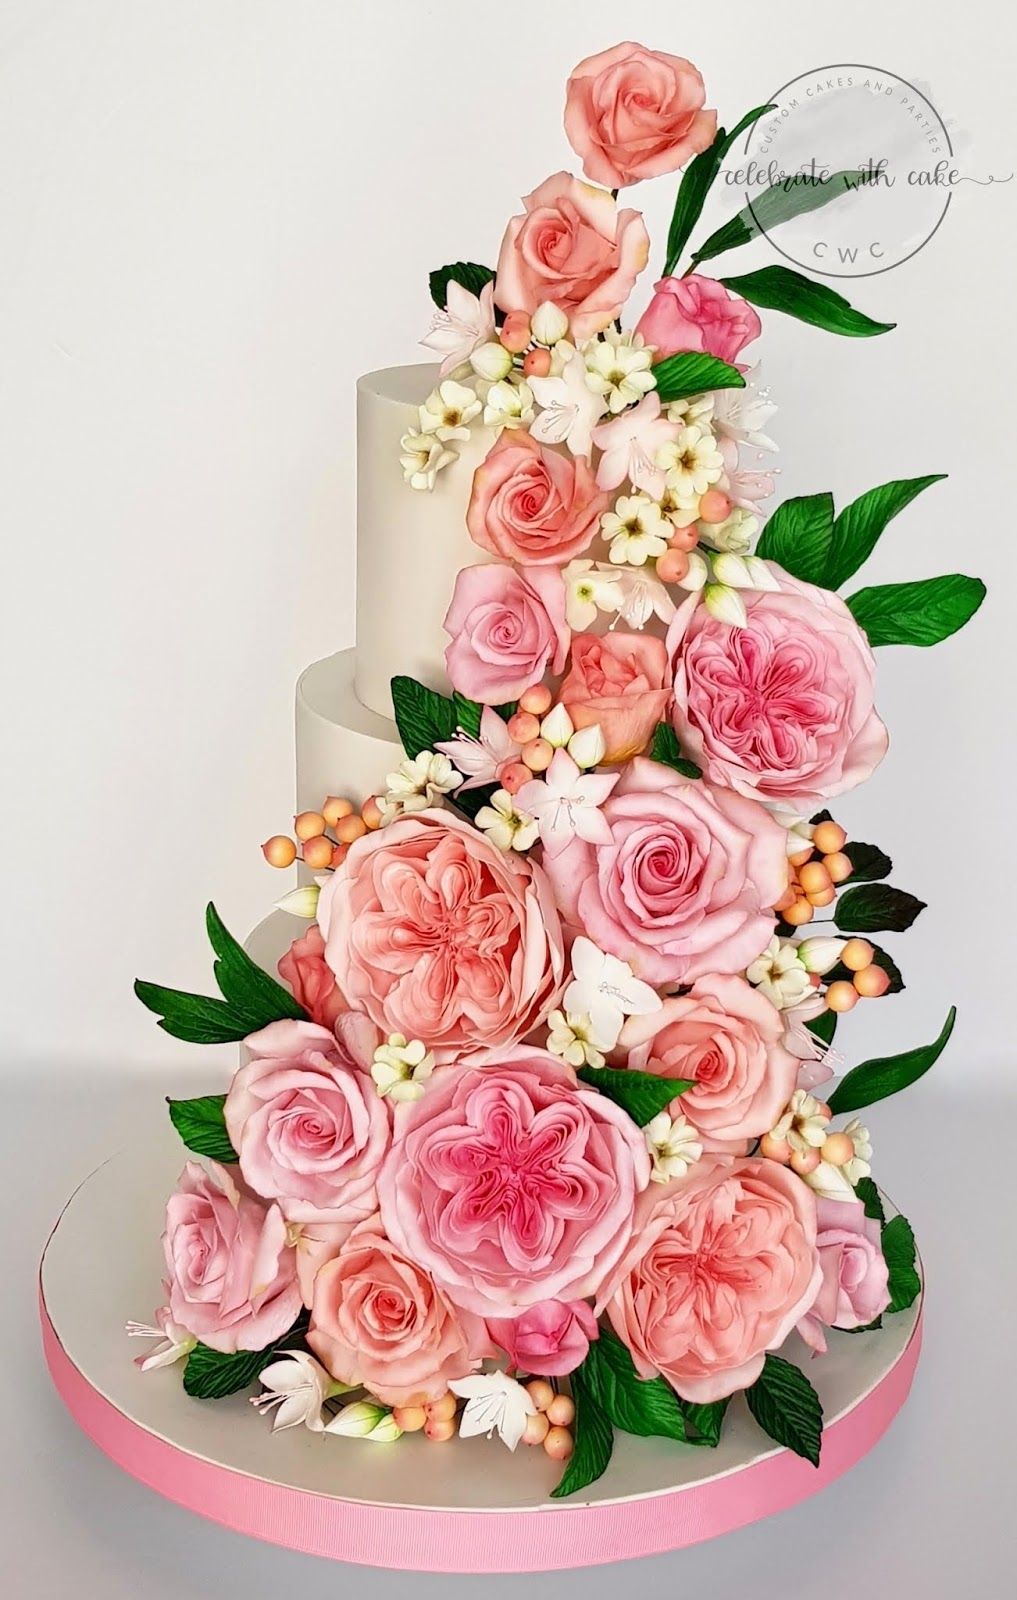 Celebrate With Cake 3 Tiered Wedding Cake With Roses David